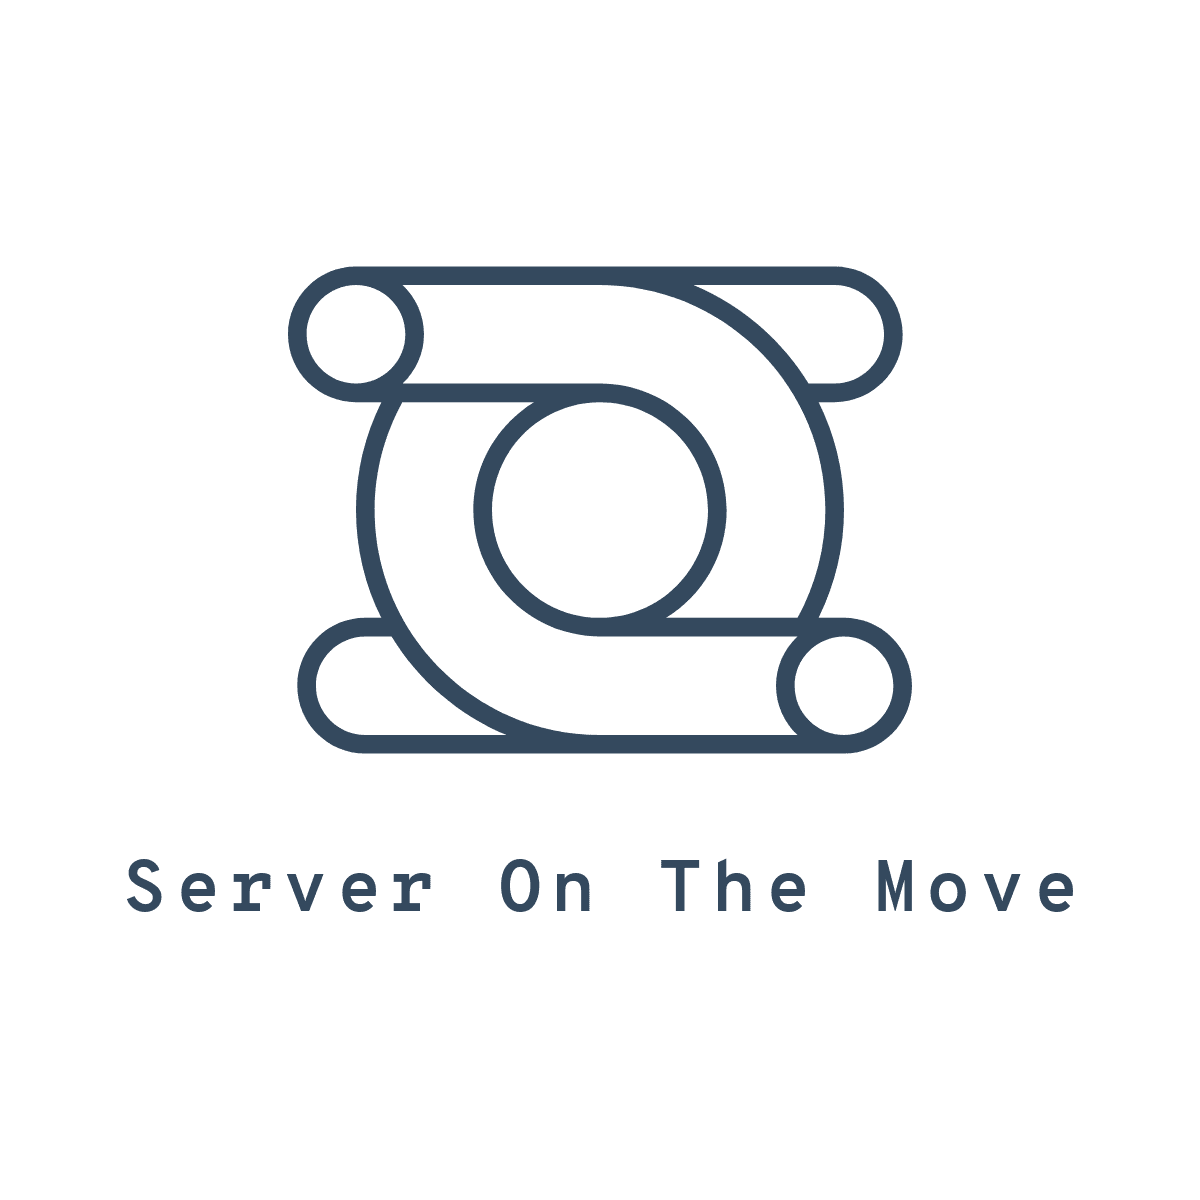 Server On The Move